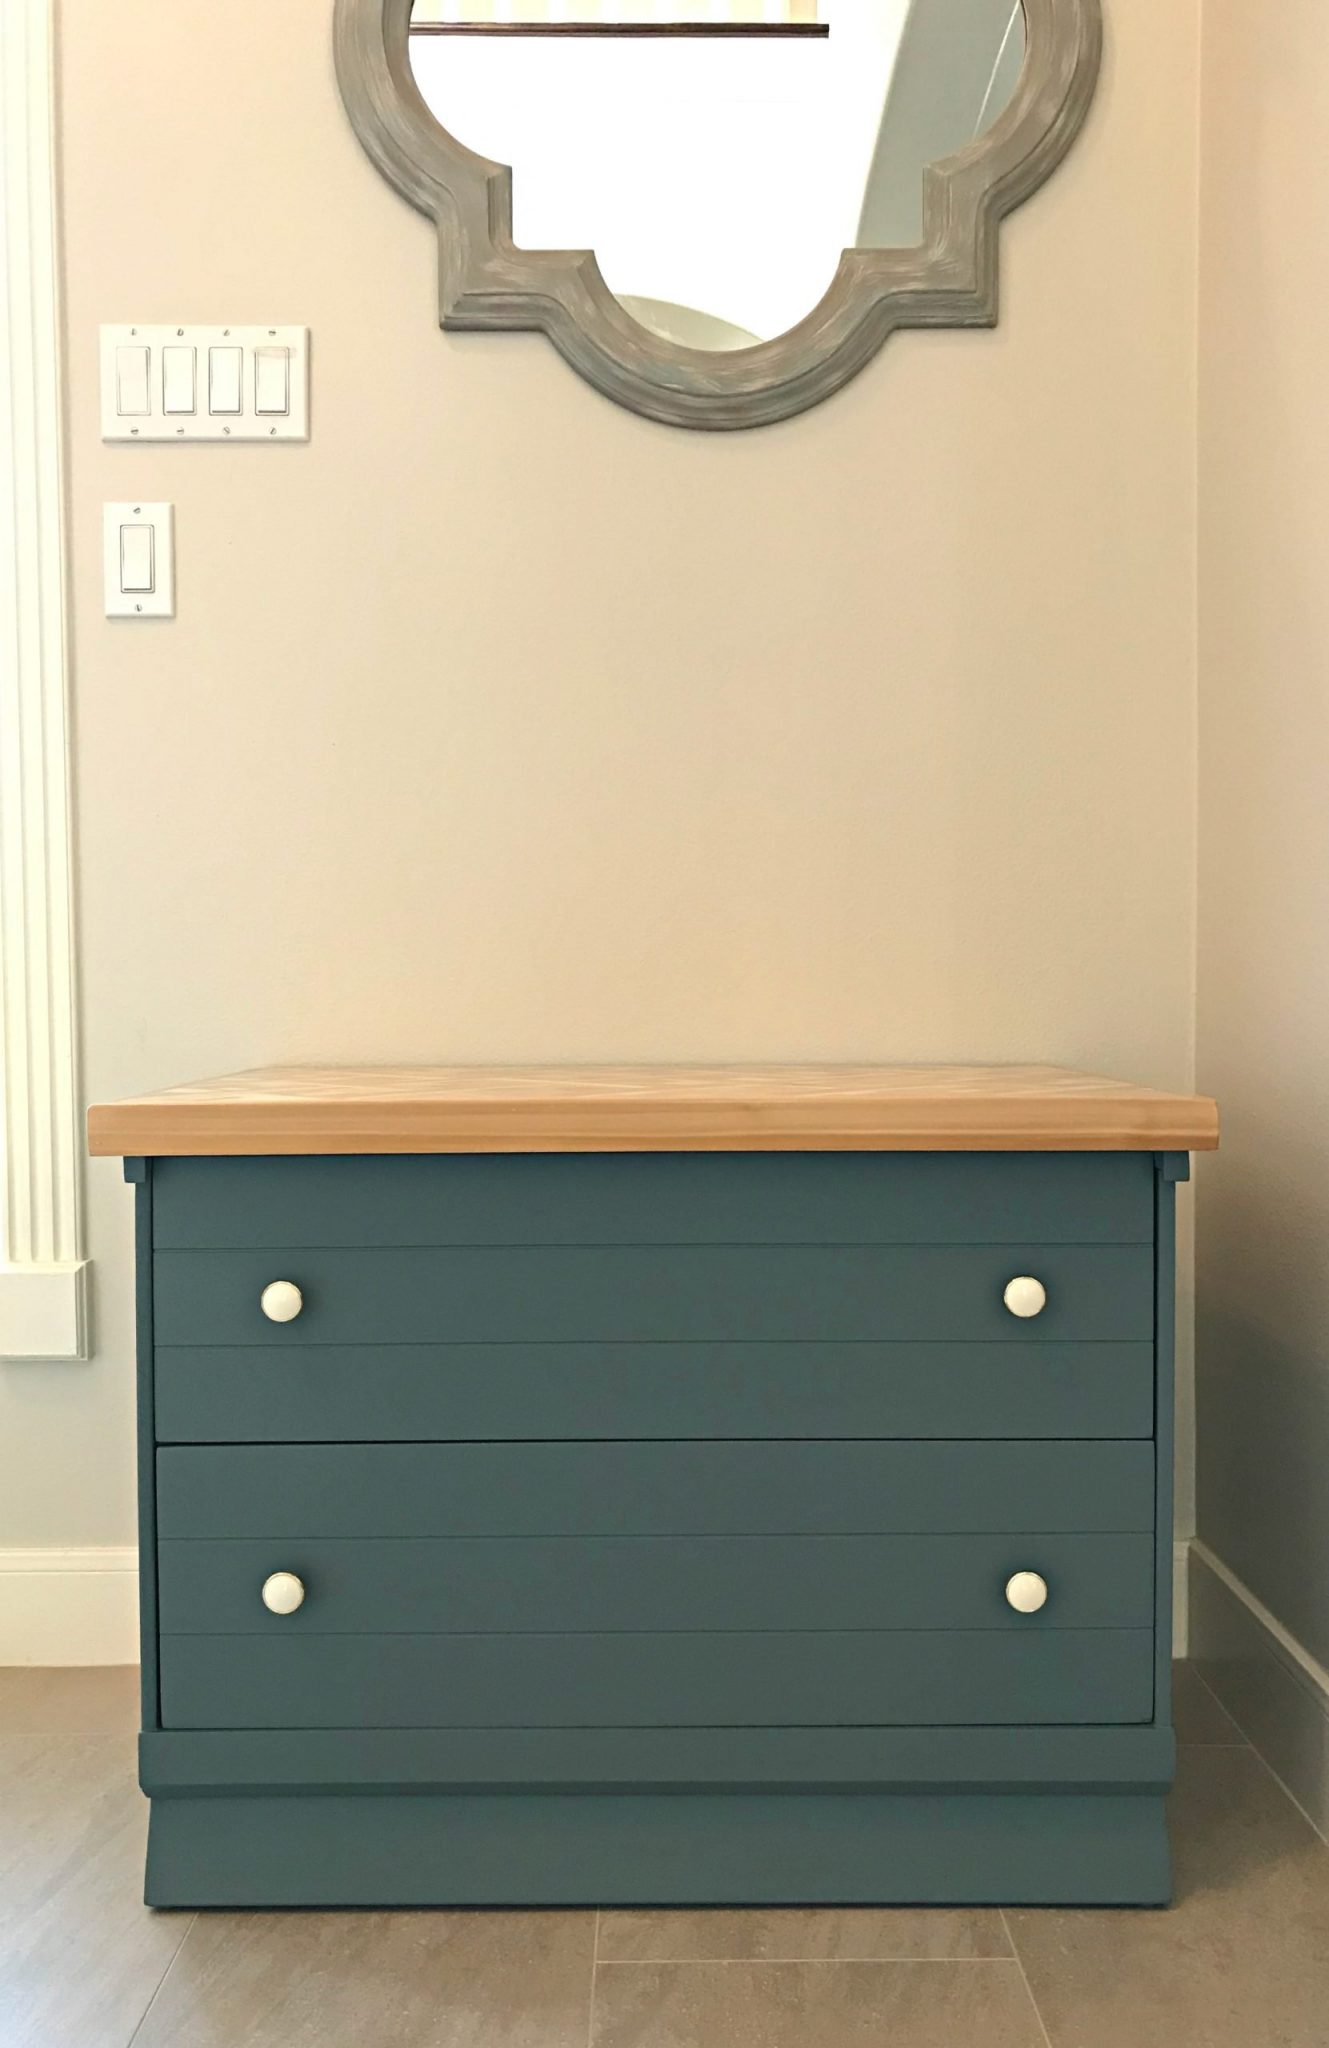 DIY Night Stand Makeover painting steps for furniture makeover with before and after pictures from the 5 different looks it has had over the years.